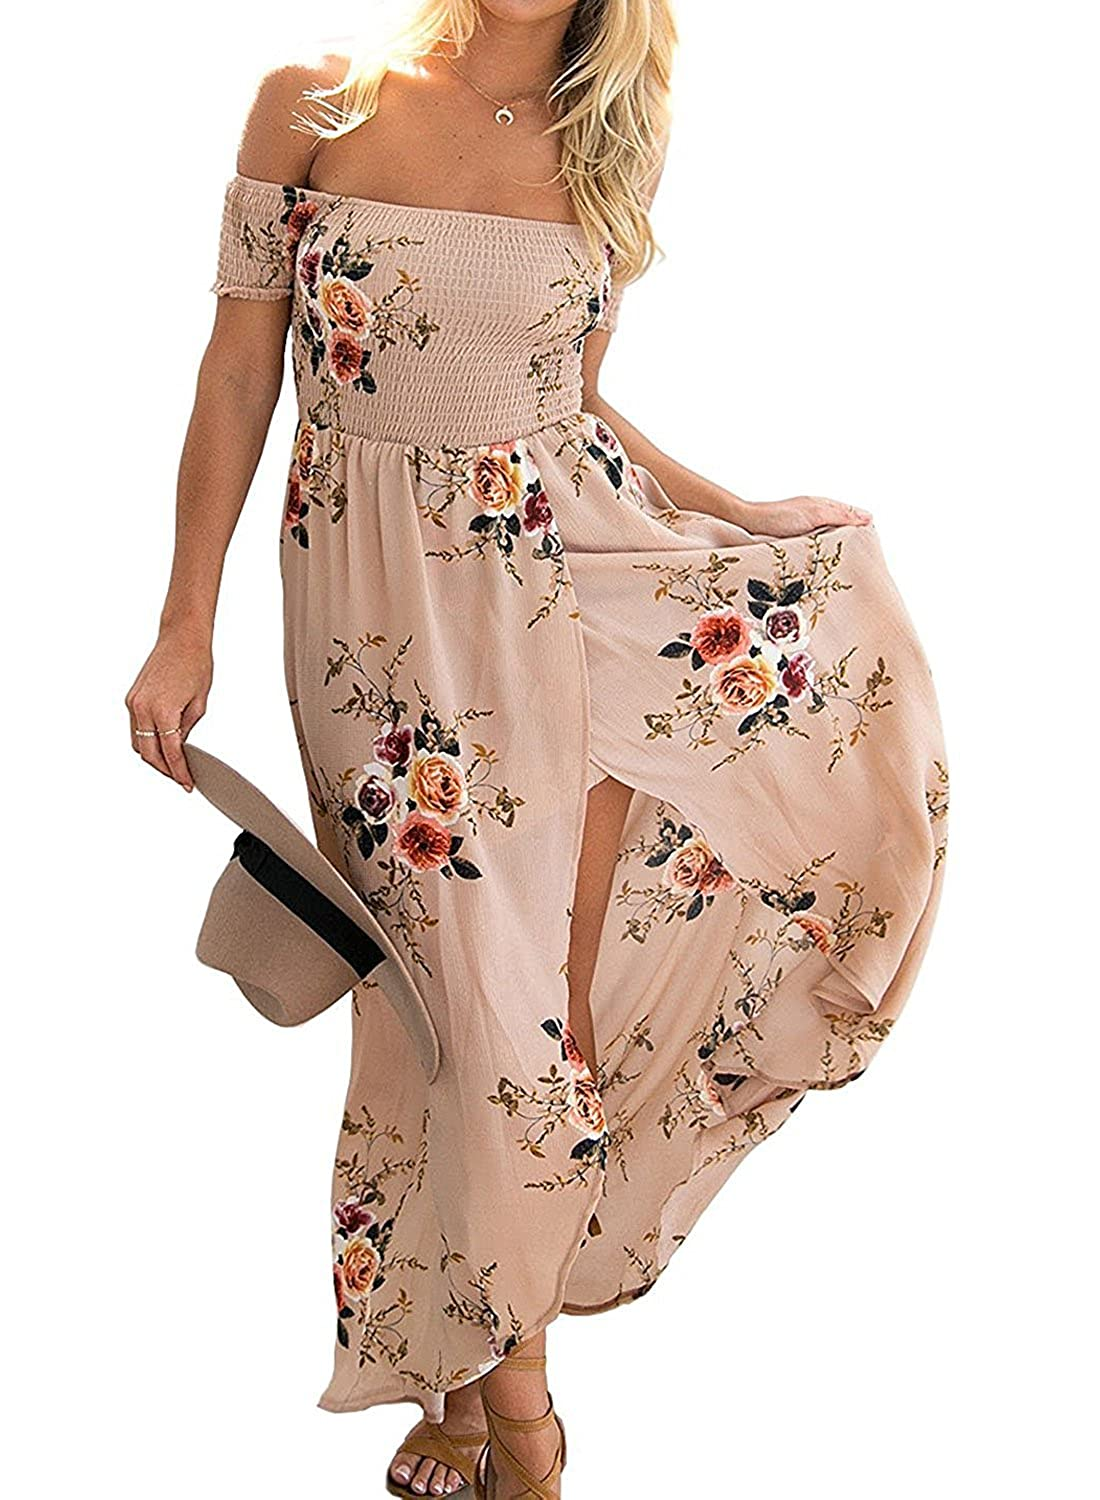 Fashion Summer Trend: Long Dresses best photo